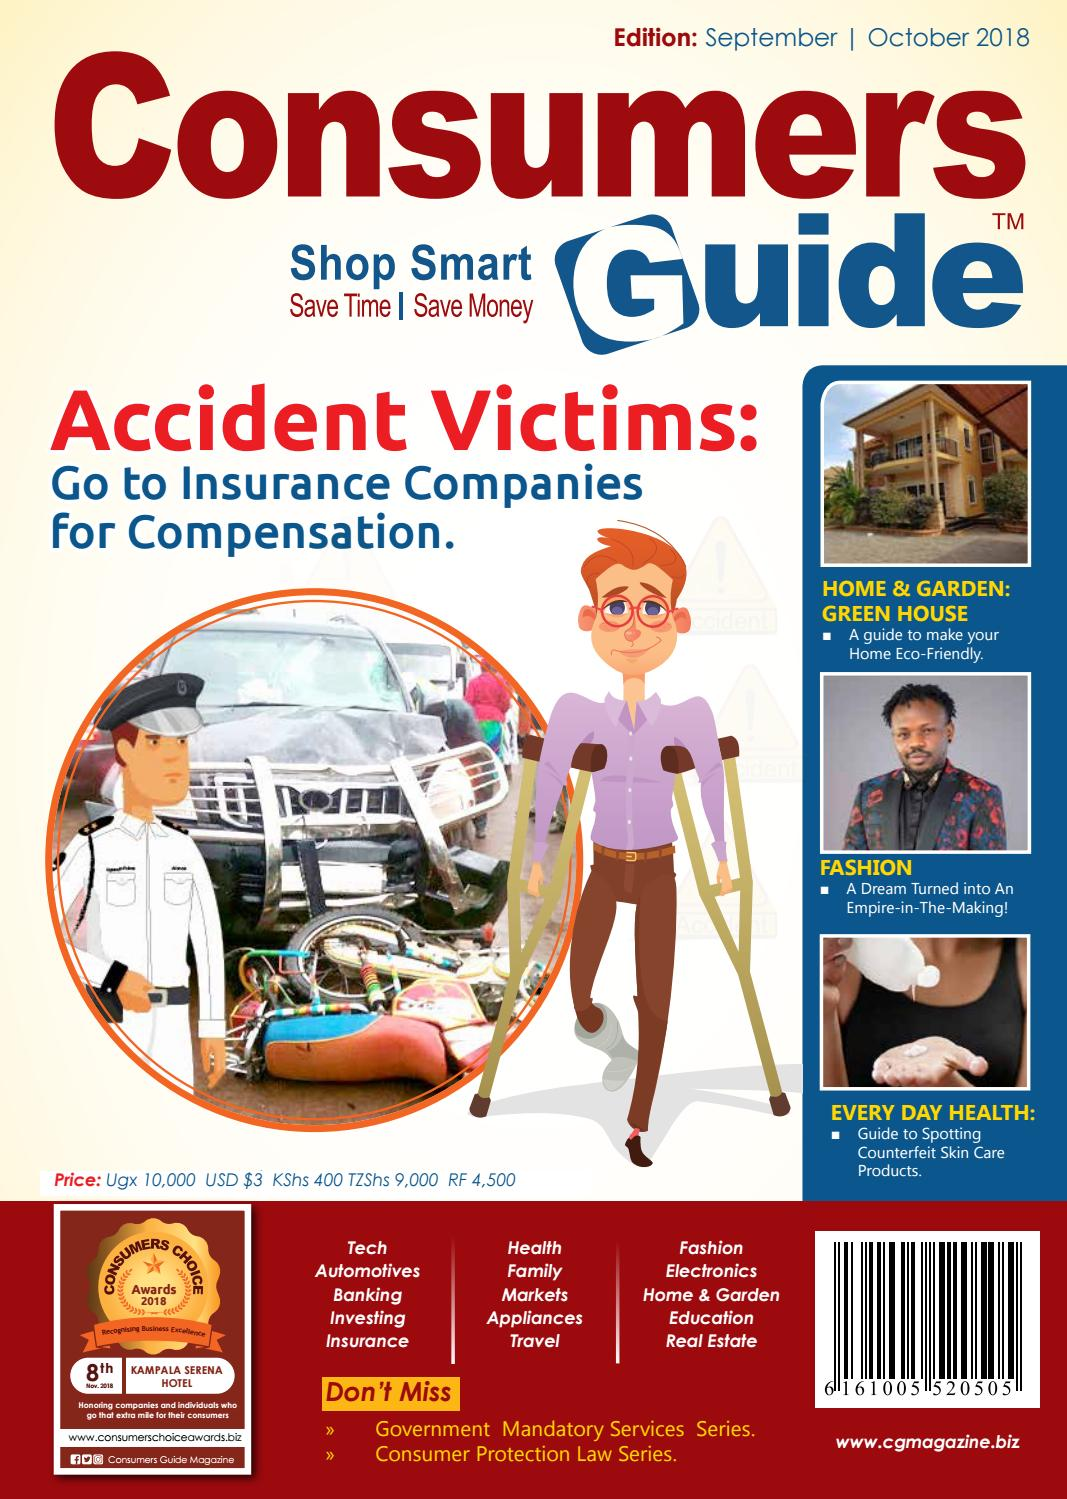 hight resolution of consumers guide magazine september october 2018 issue by cgmagazine1 issuu